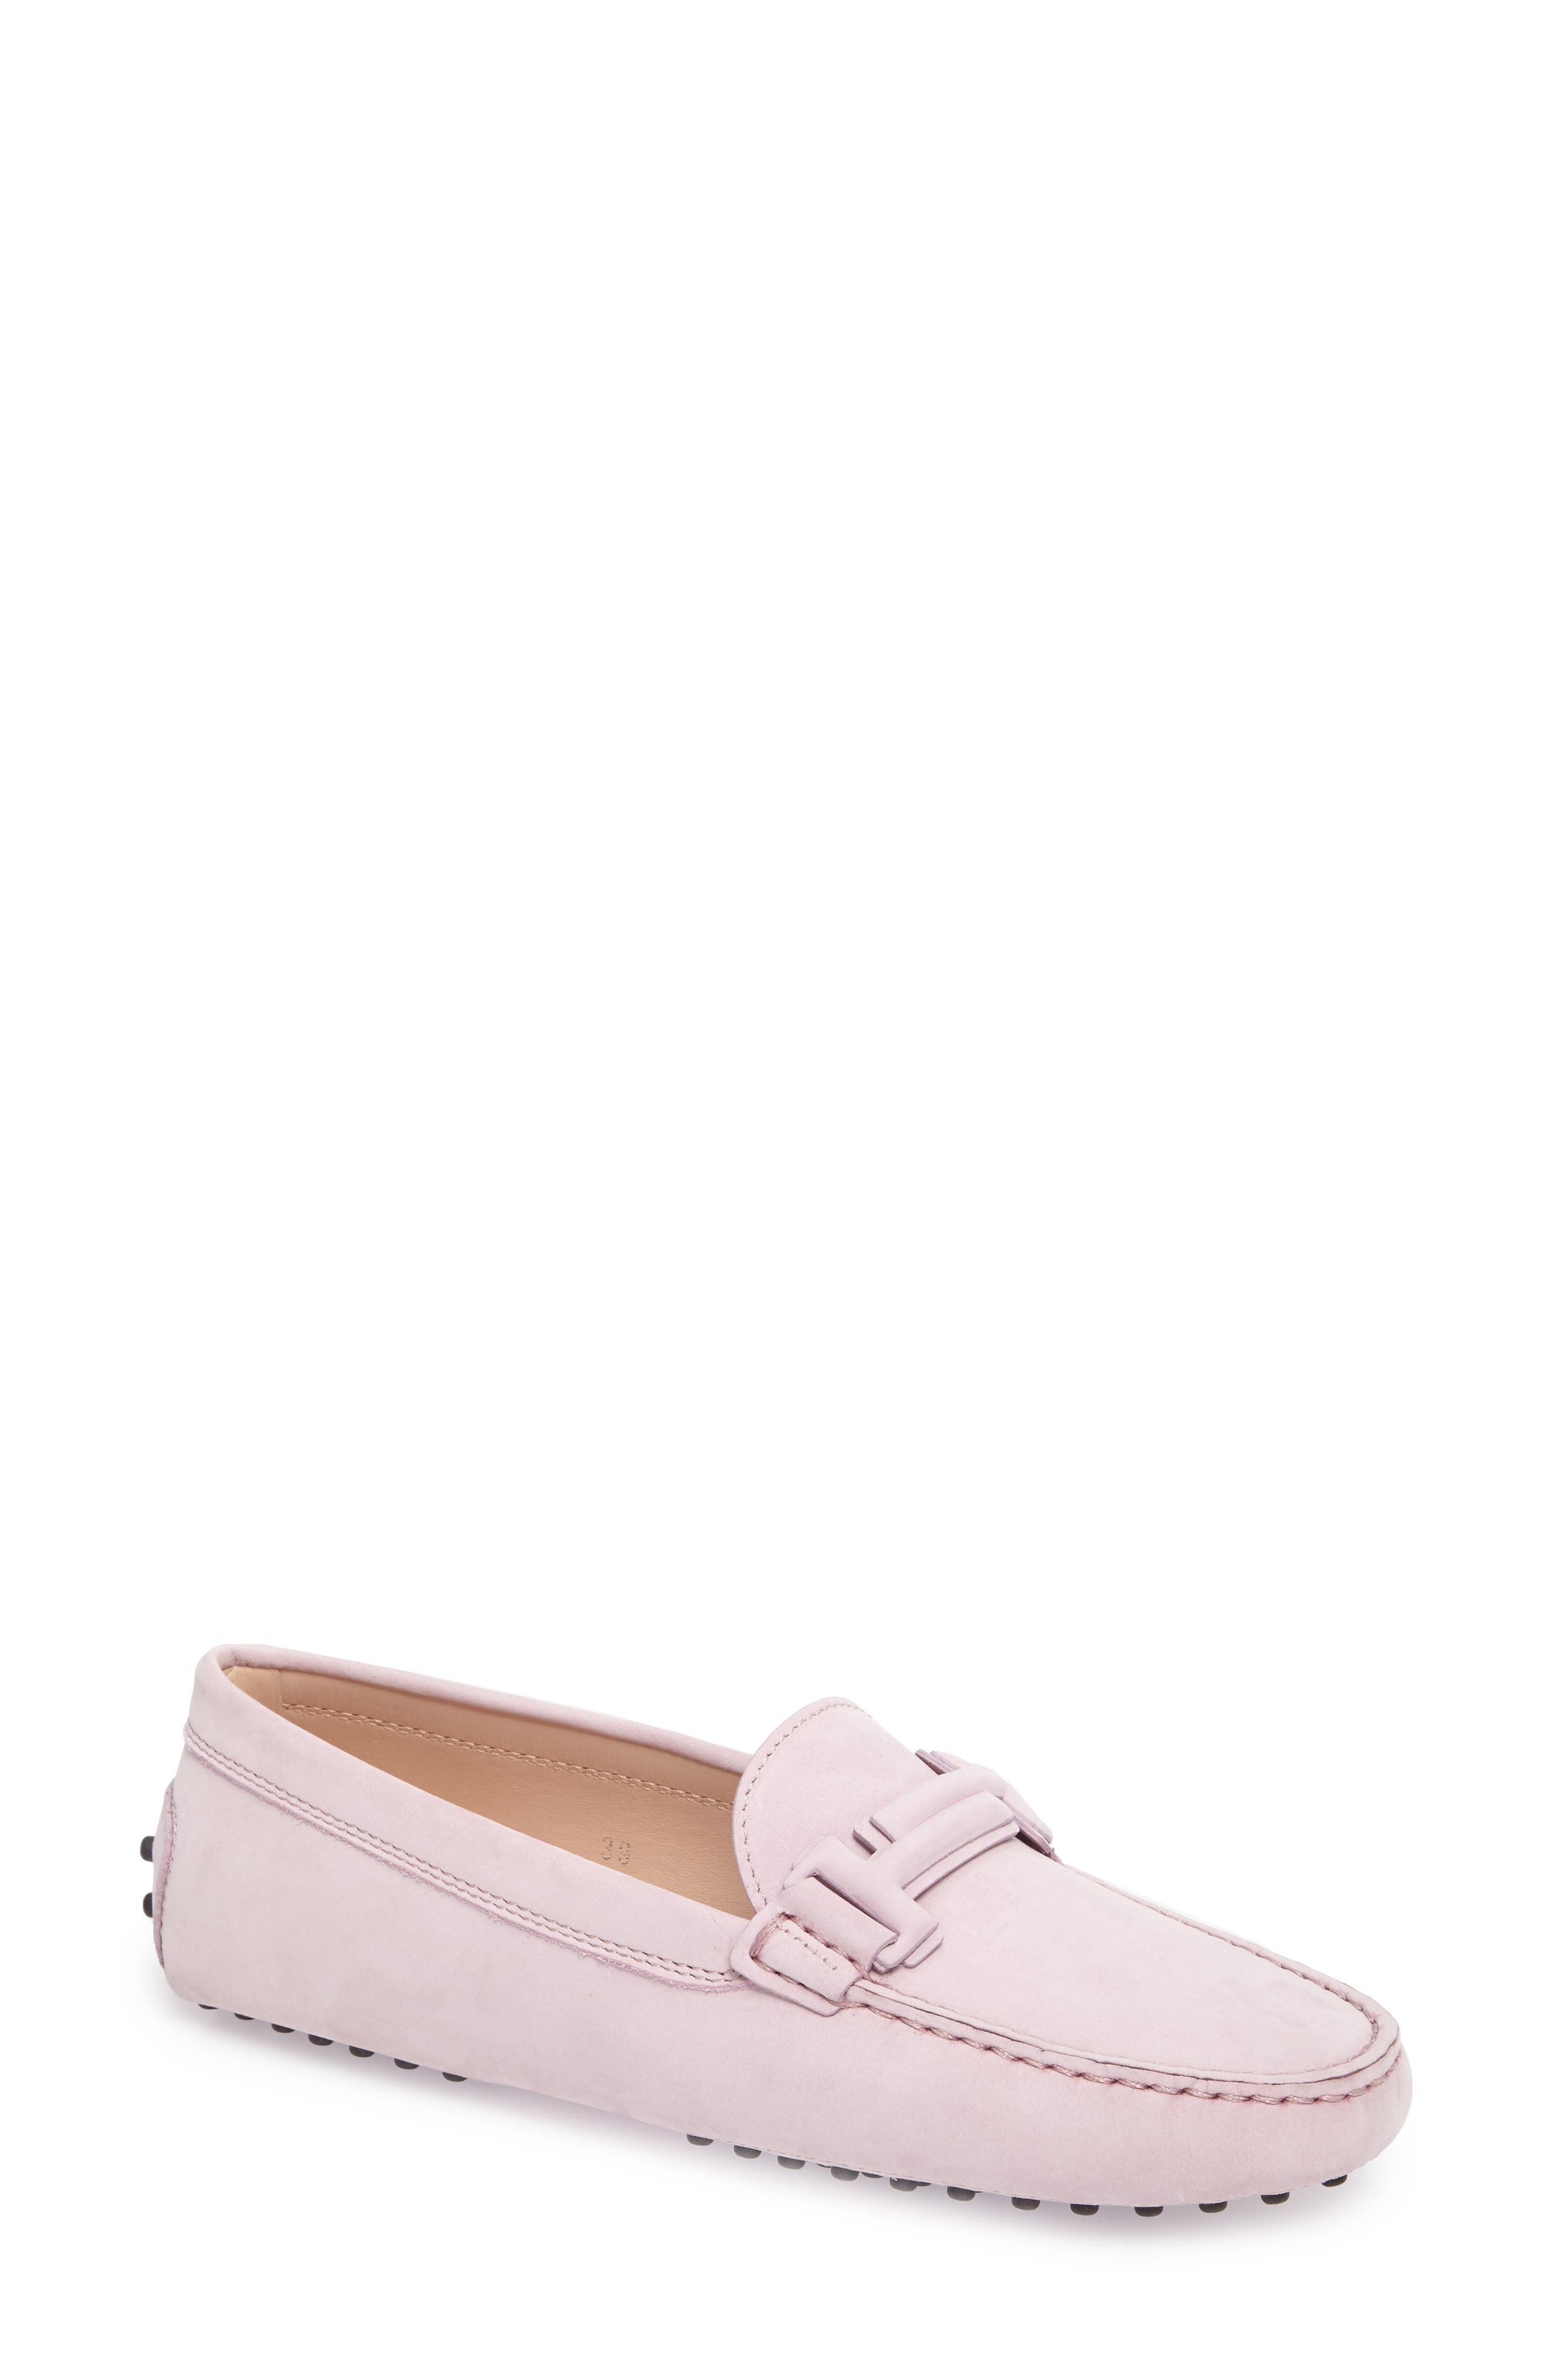 Main Image - Tod's Gommini Covered Double T Loafer (Women)